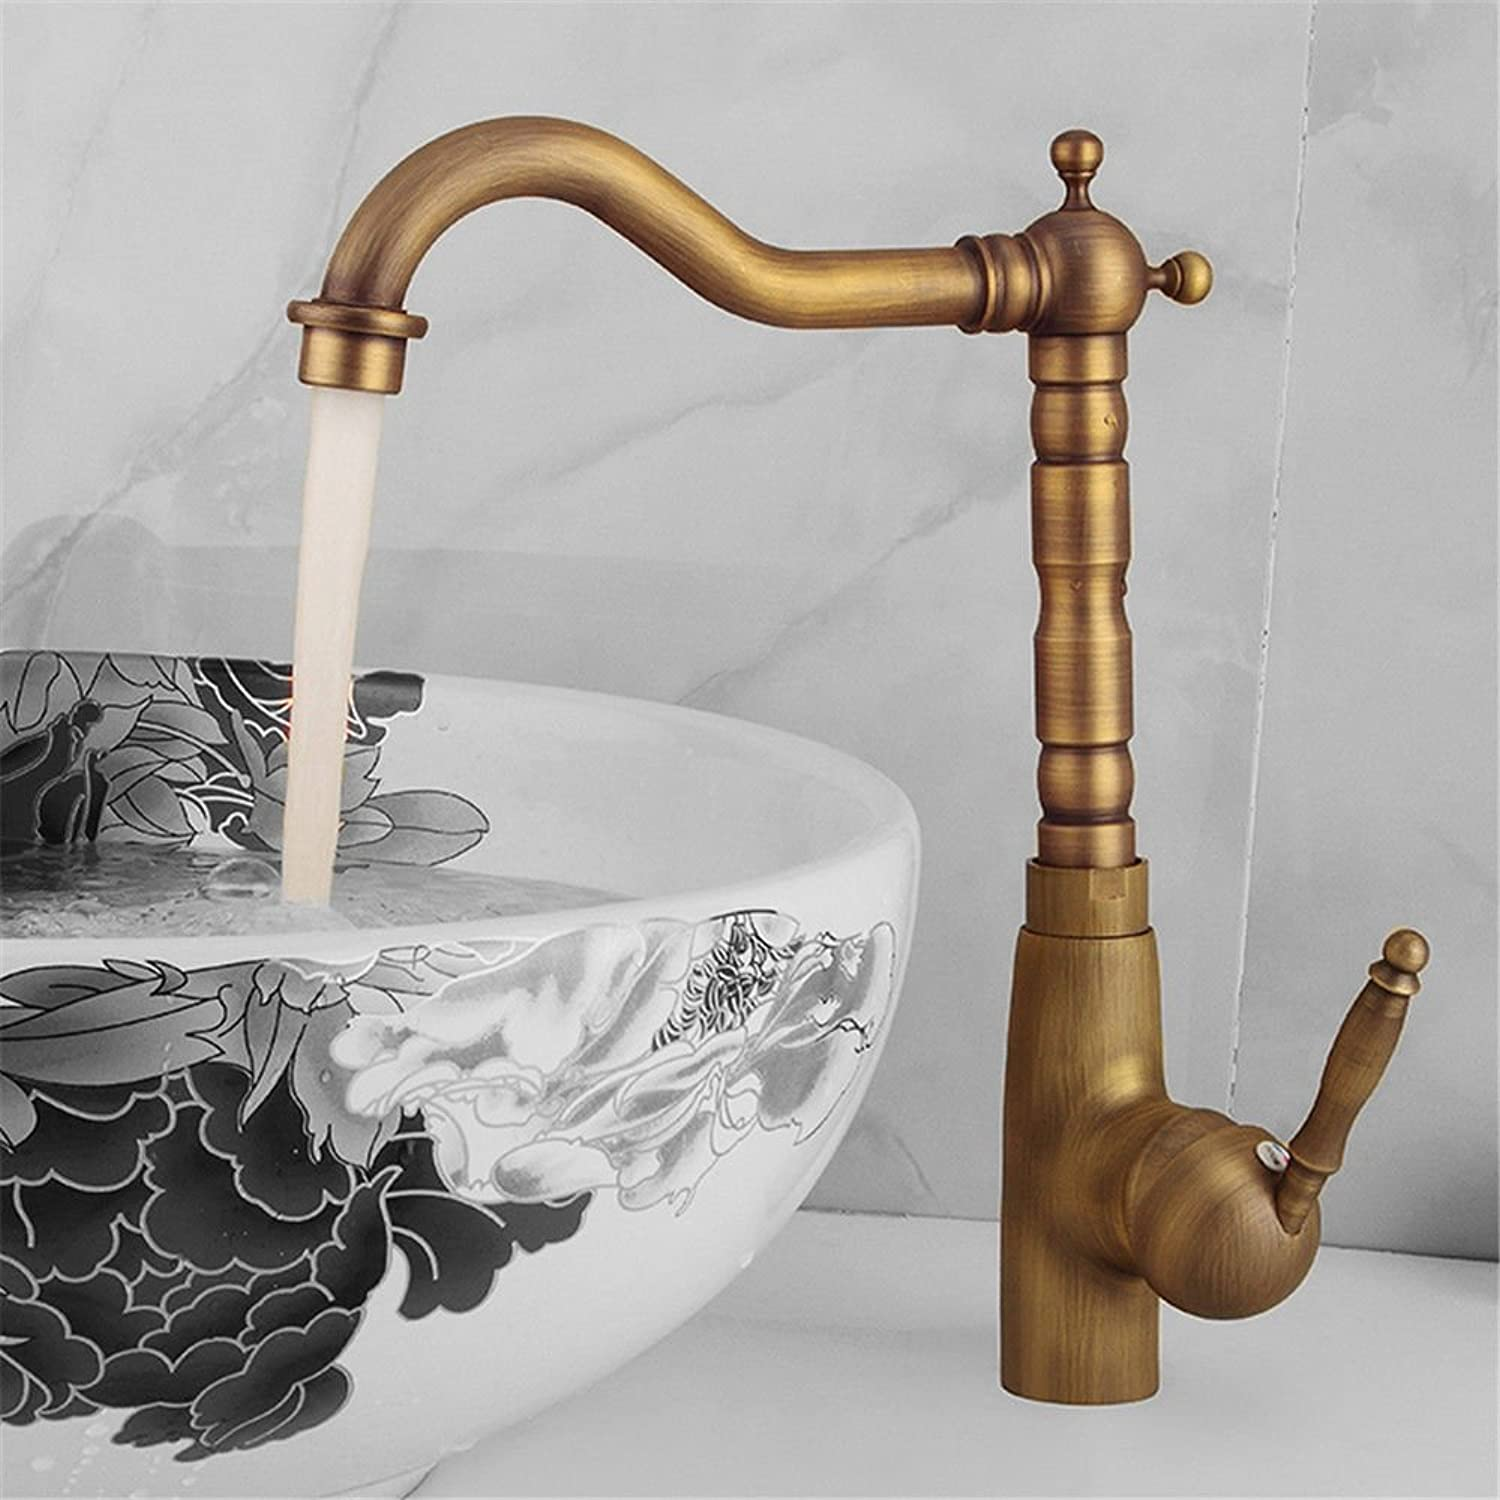 Commercial Single Lever Pull Down Kitchen Sink Faucet Brass Constructed Polished Antique Faucet Basin Faucet Retro Faucet Kitchen bluee and White Porcelain Double Hole Faucet 360 Degrees